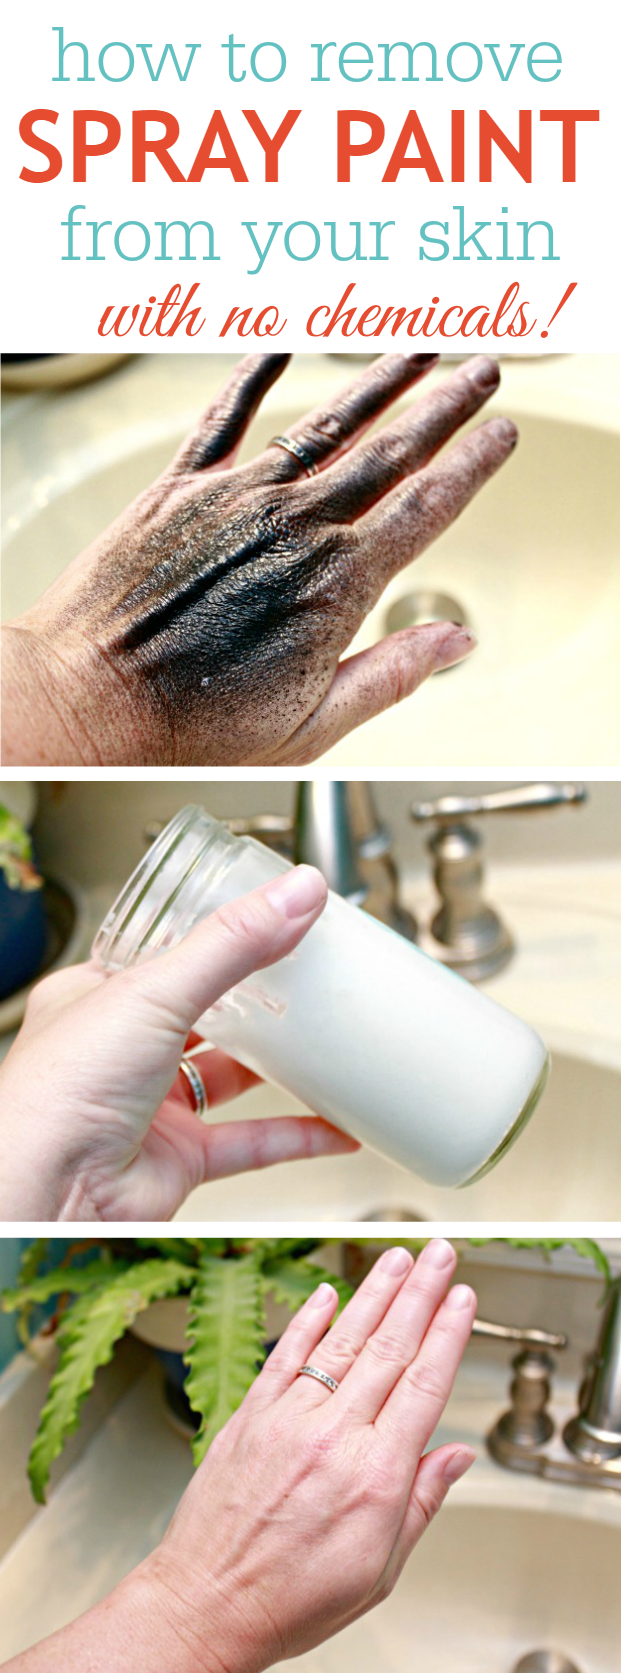 How To Remove Spray Paint From Your Skin - No Chemicals!